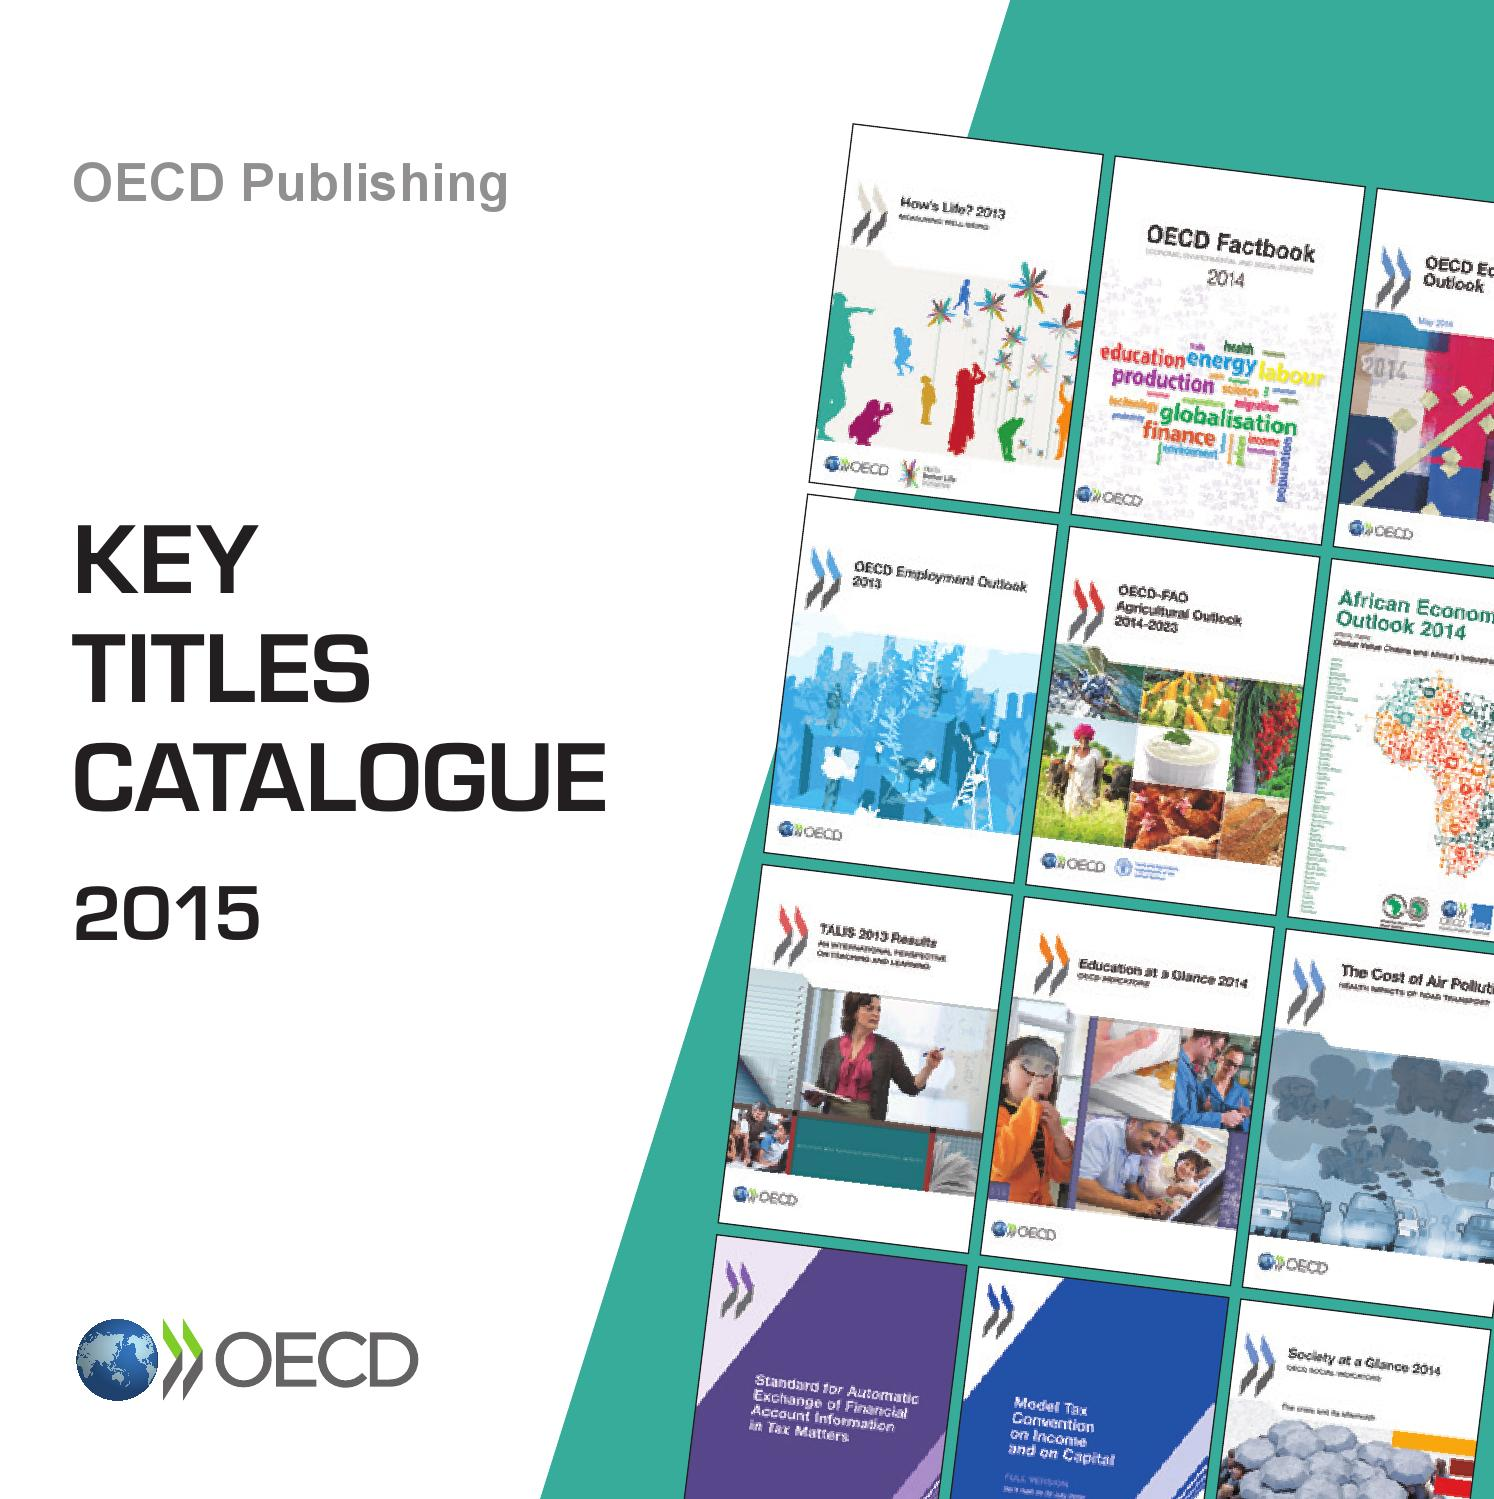 OECD Key Titles Catalogue 2015 by OECD - issuu